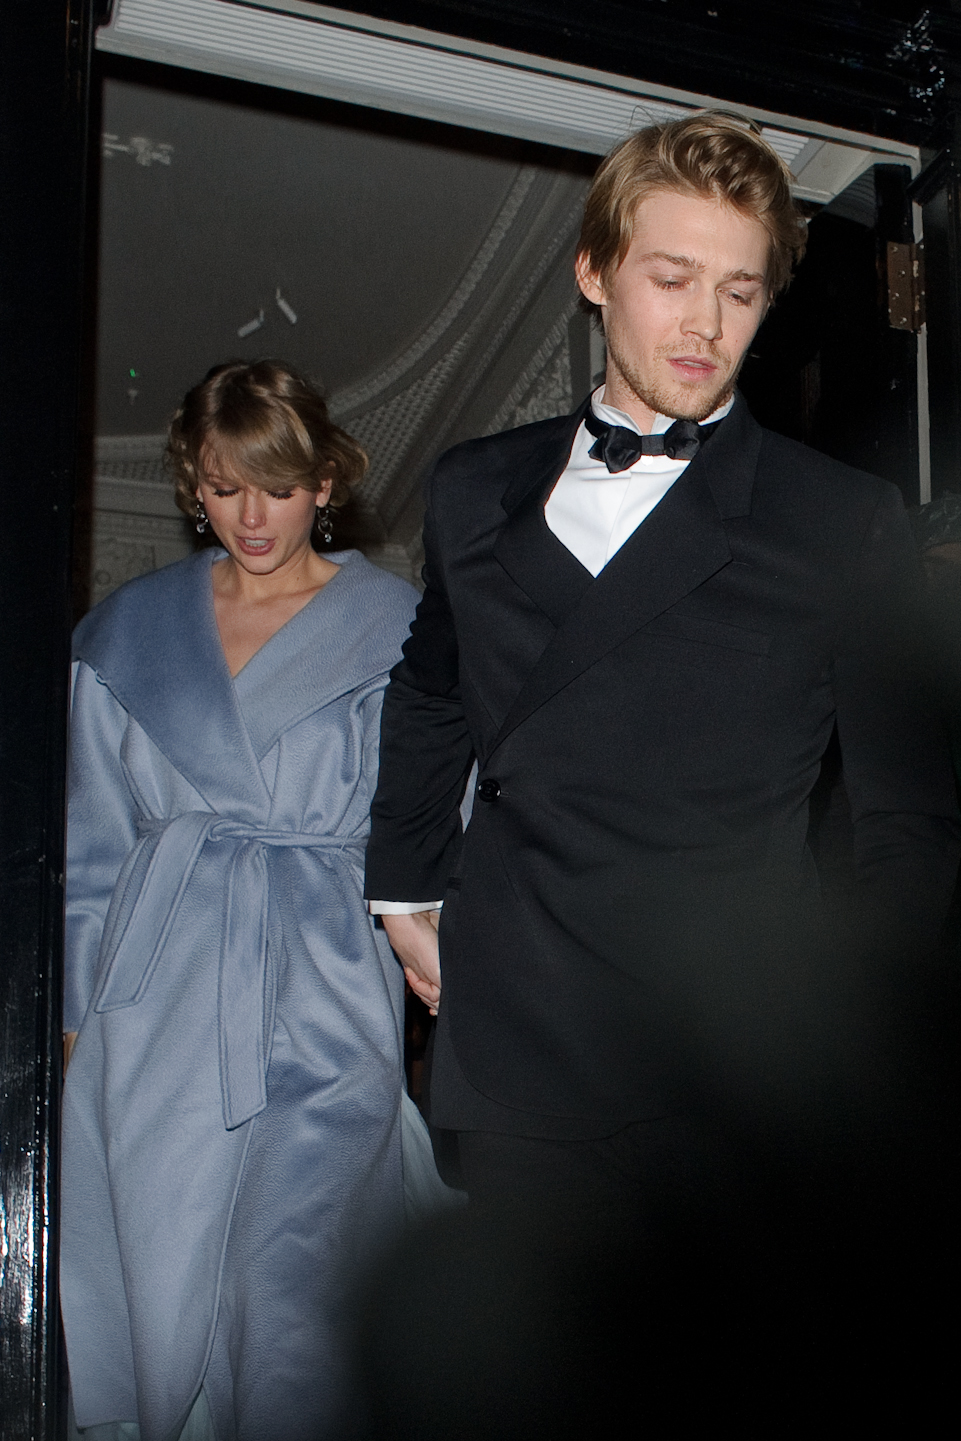 Taylor Swift and Joe Alwyn seen attending the Vogue BAFTA party at Annabel's club in Mayfair on February 10, 2019 in London, England. (Photo by GOR/GC Images)